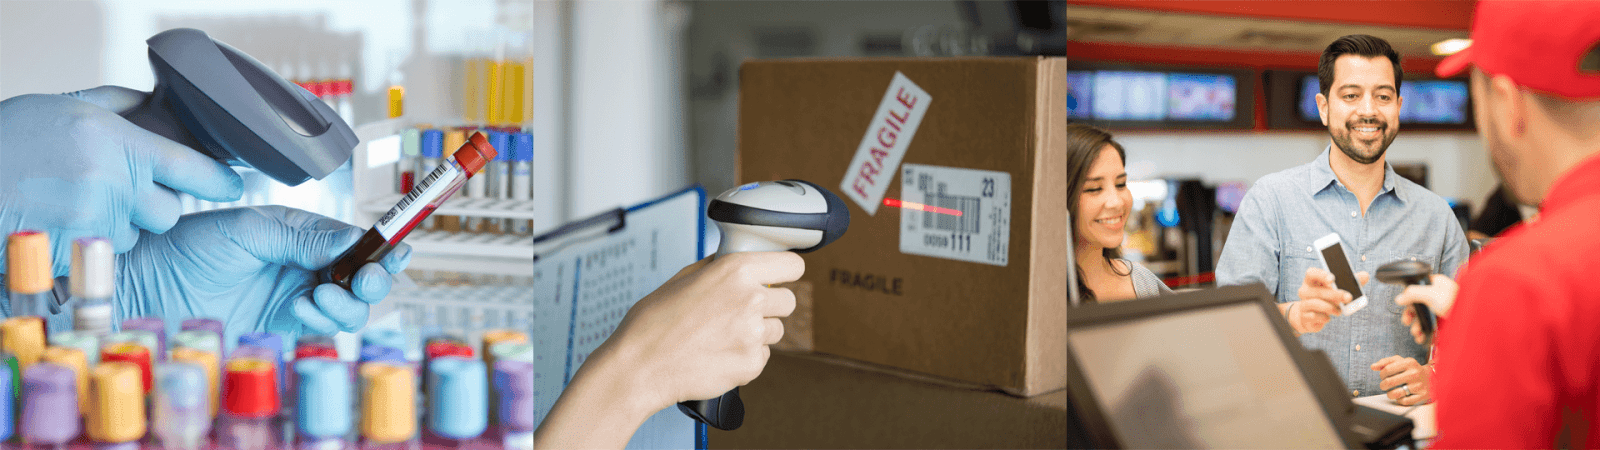 Uses of a 2D barcode scanner